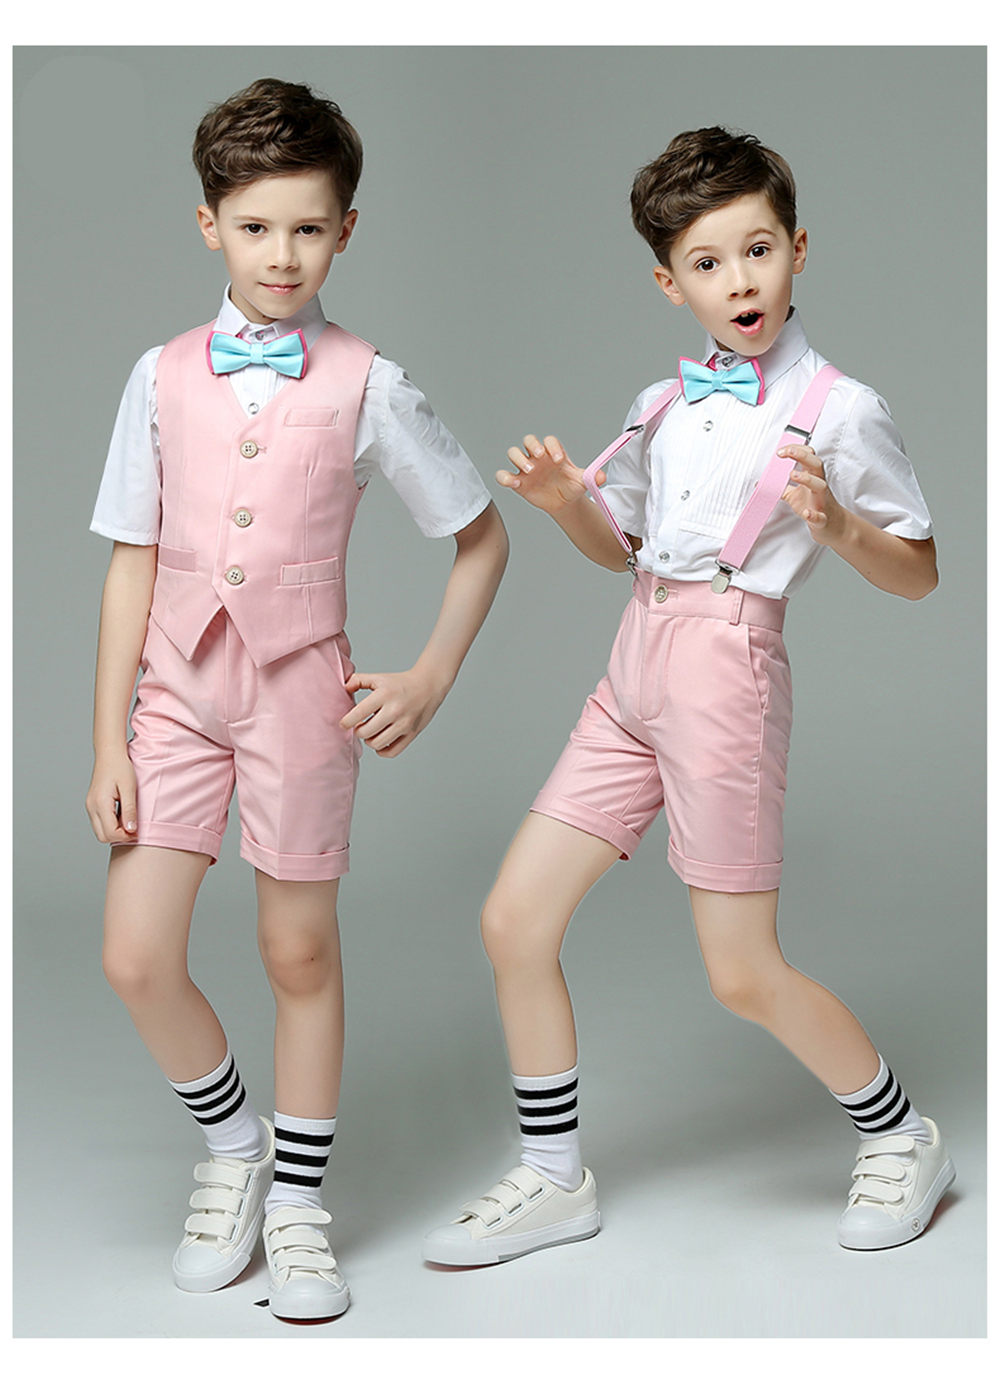 Fashion Boy Suit for Weddings Prom Party Children Slim Fit Suit Sets Boys Tuxedo Formal Vest Pants Classic Costume Pink Blue